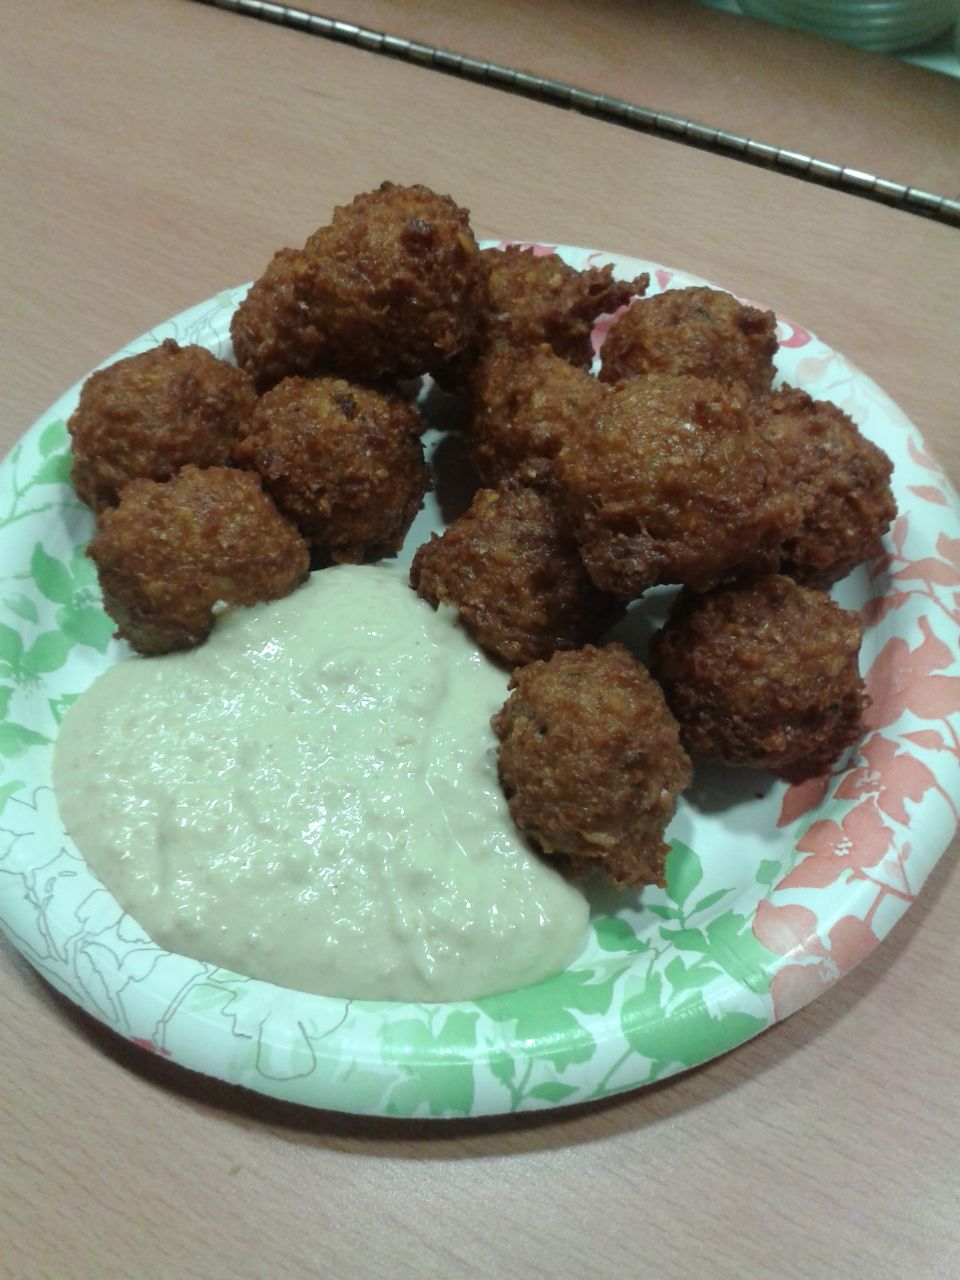 https://i1.wp.com/fatgayvegan.com/wp-content/uploads/2014/02/falafel-plate.jpg?fit=960%2C1280